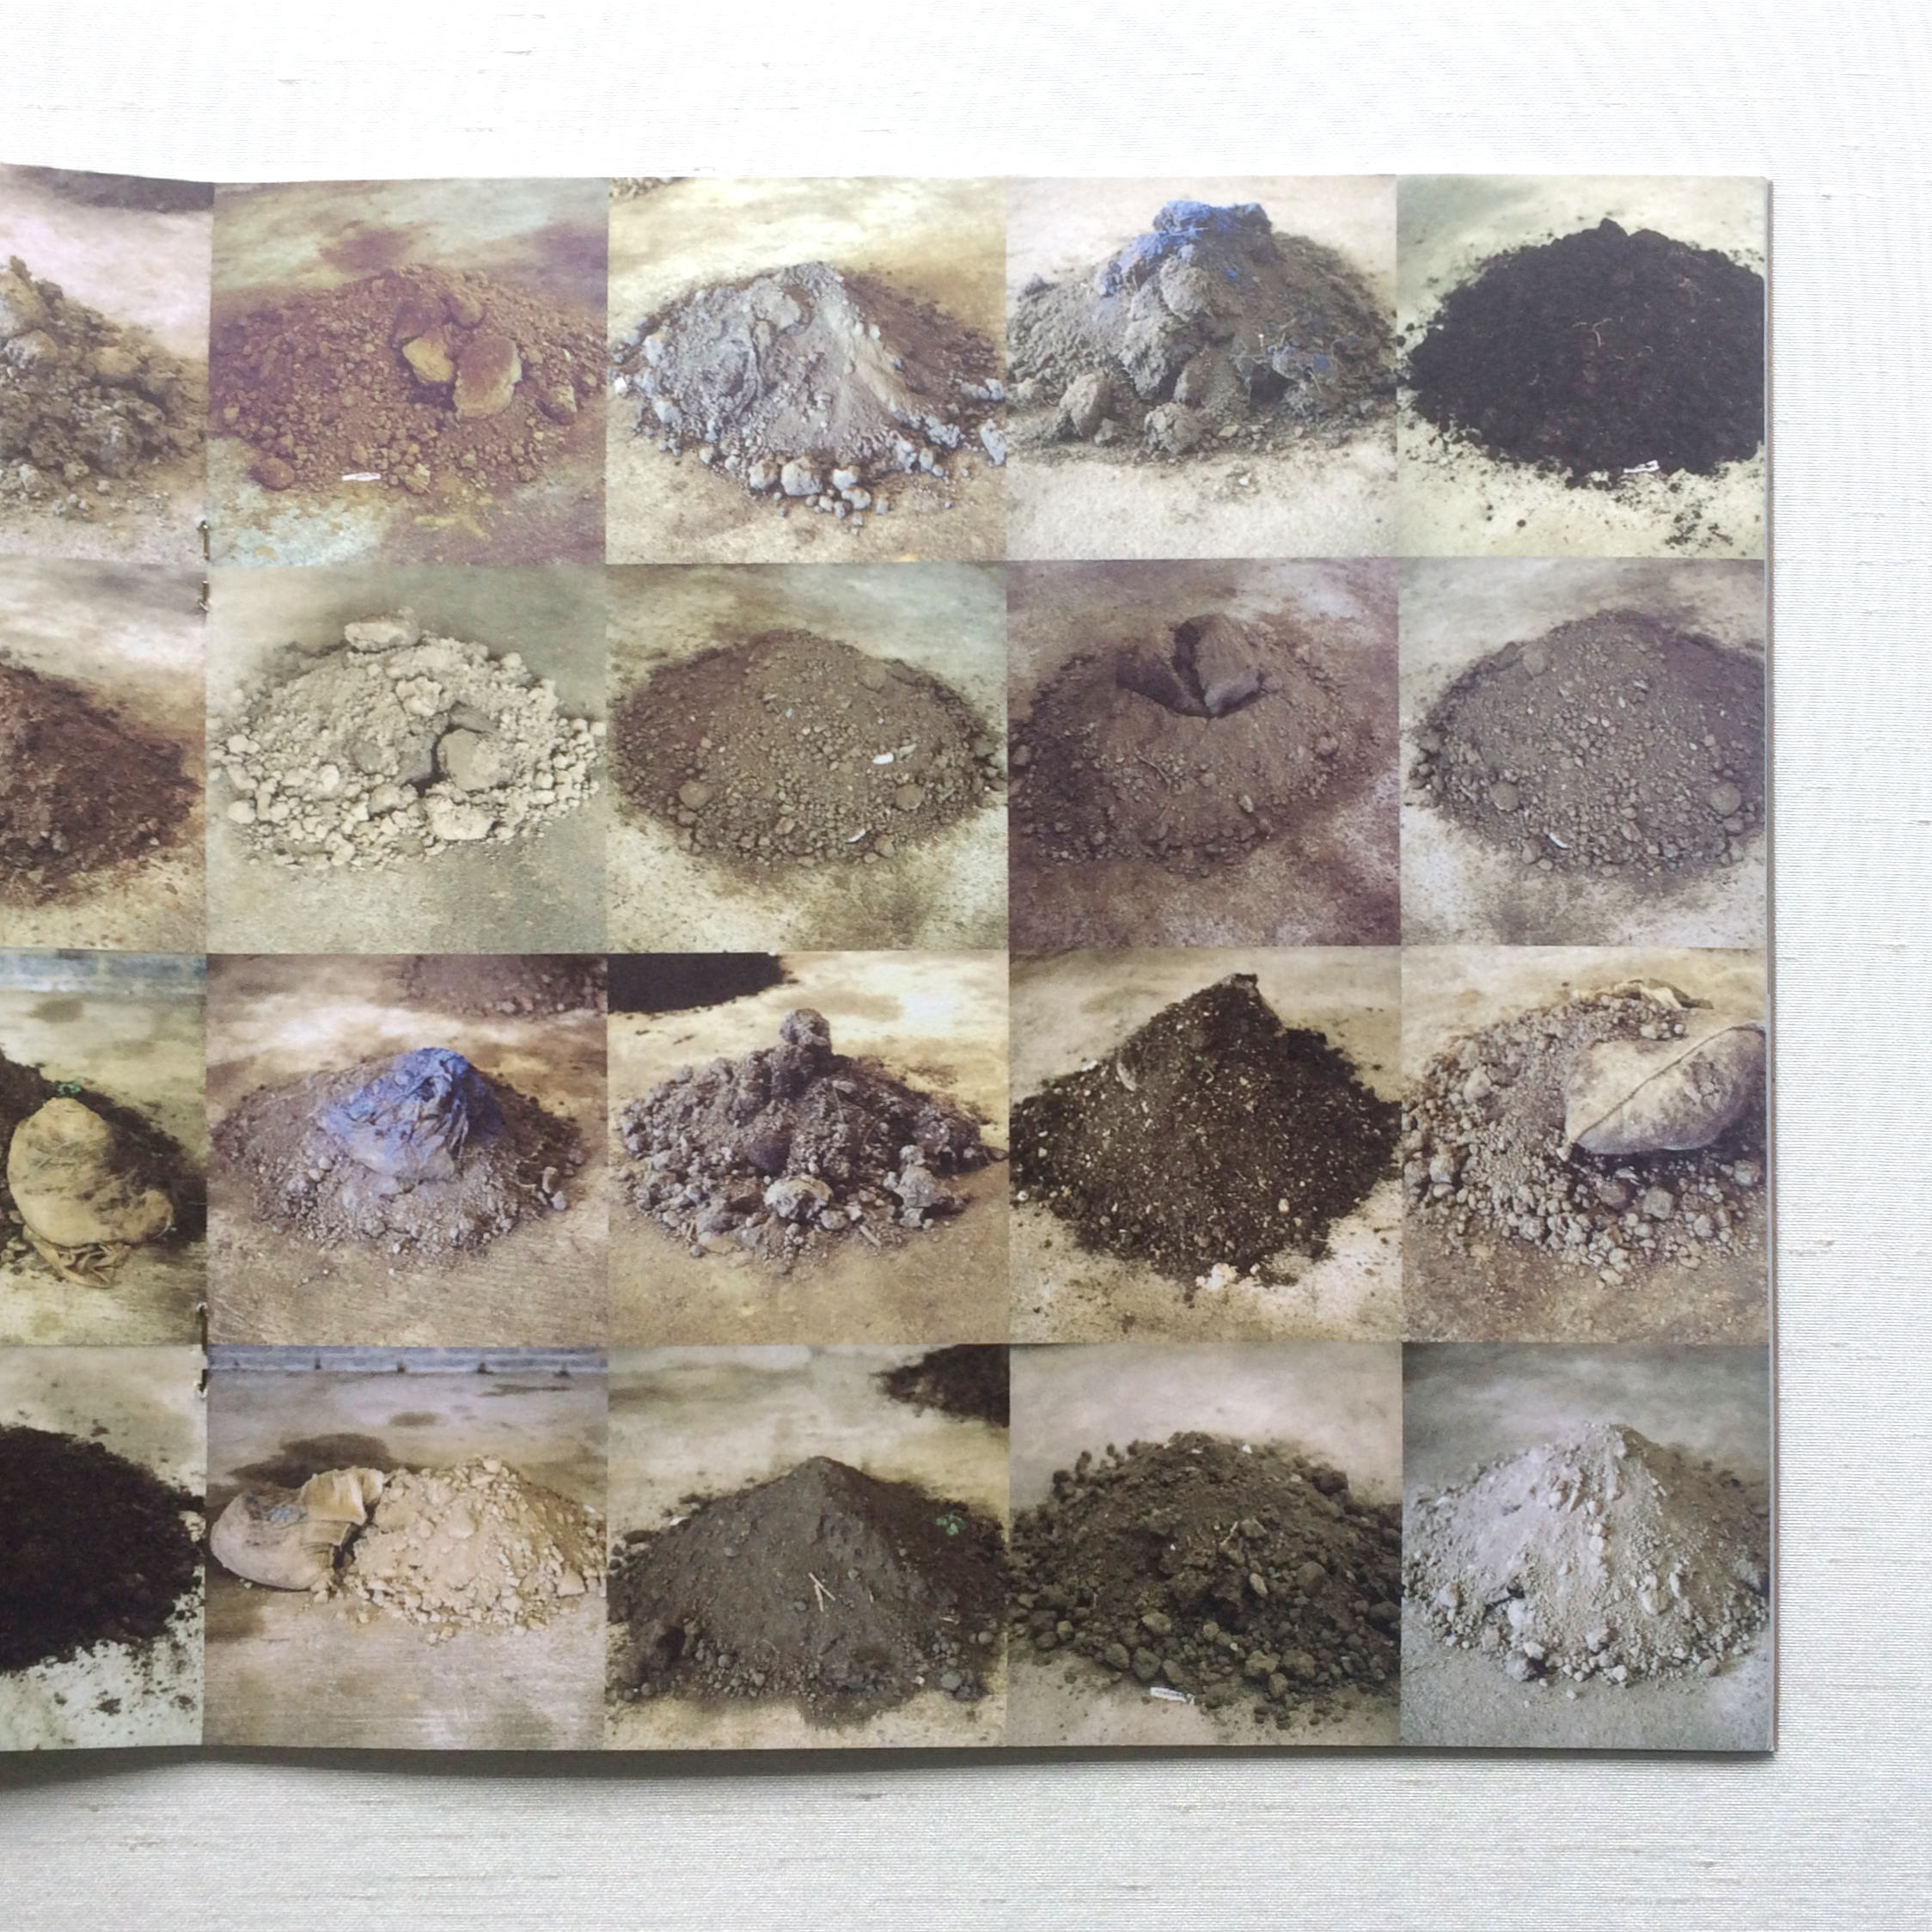 32 soils for 32 counties in Ireland - art installation by artist Patricia McKenna